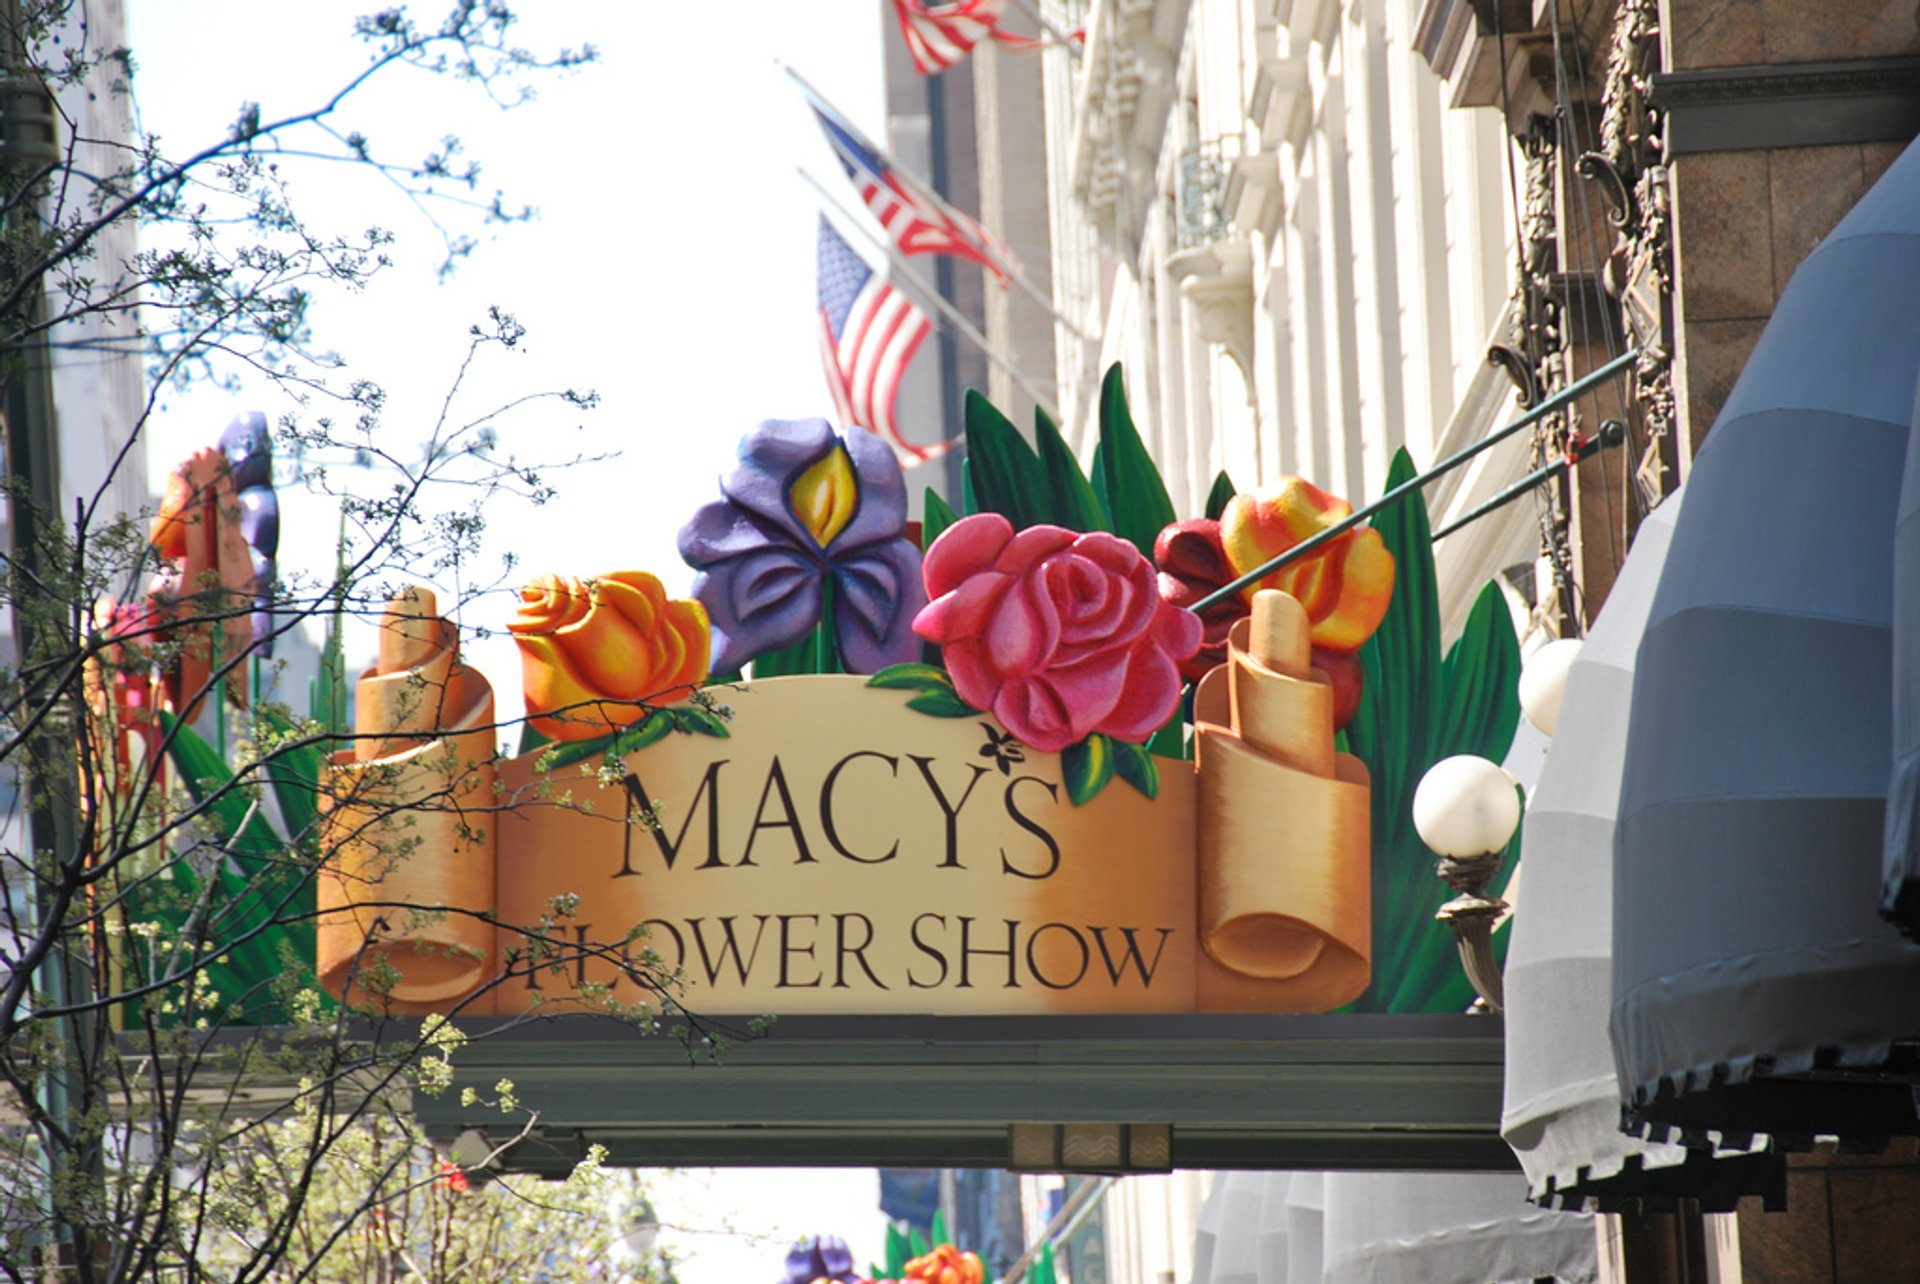 Macy's Flower Show in New York 2020 - Best Time